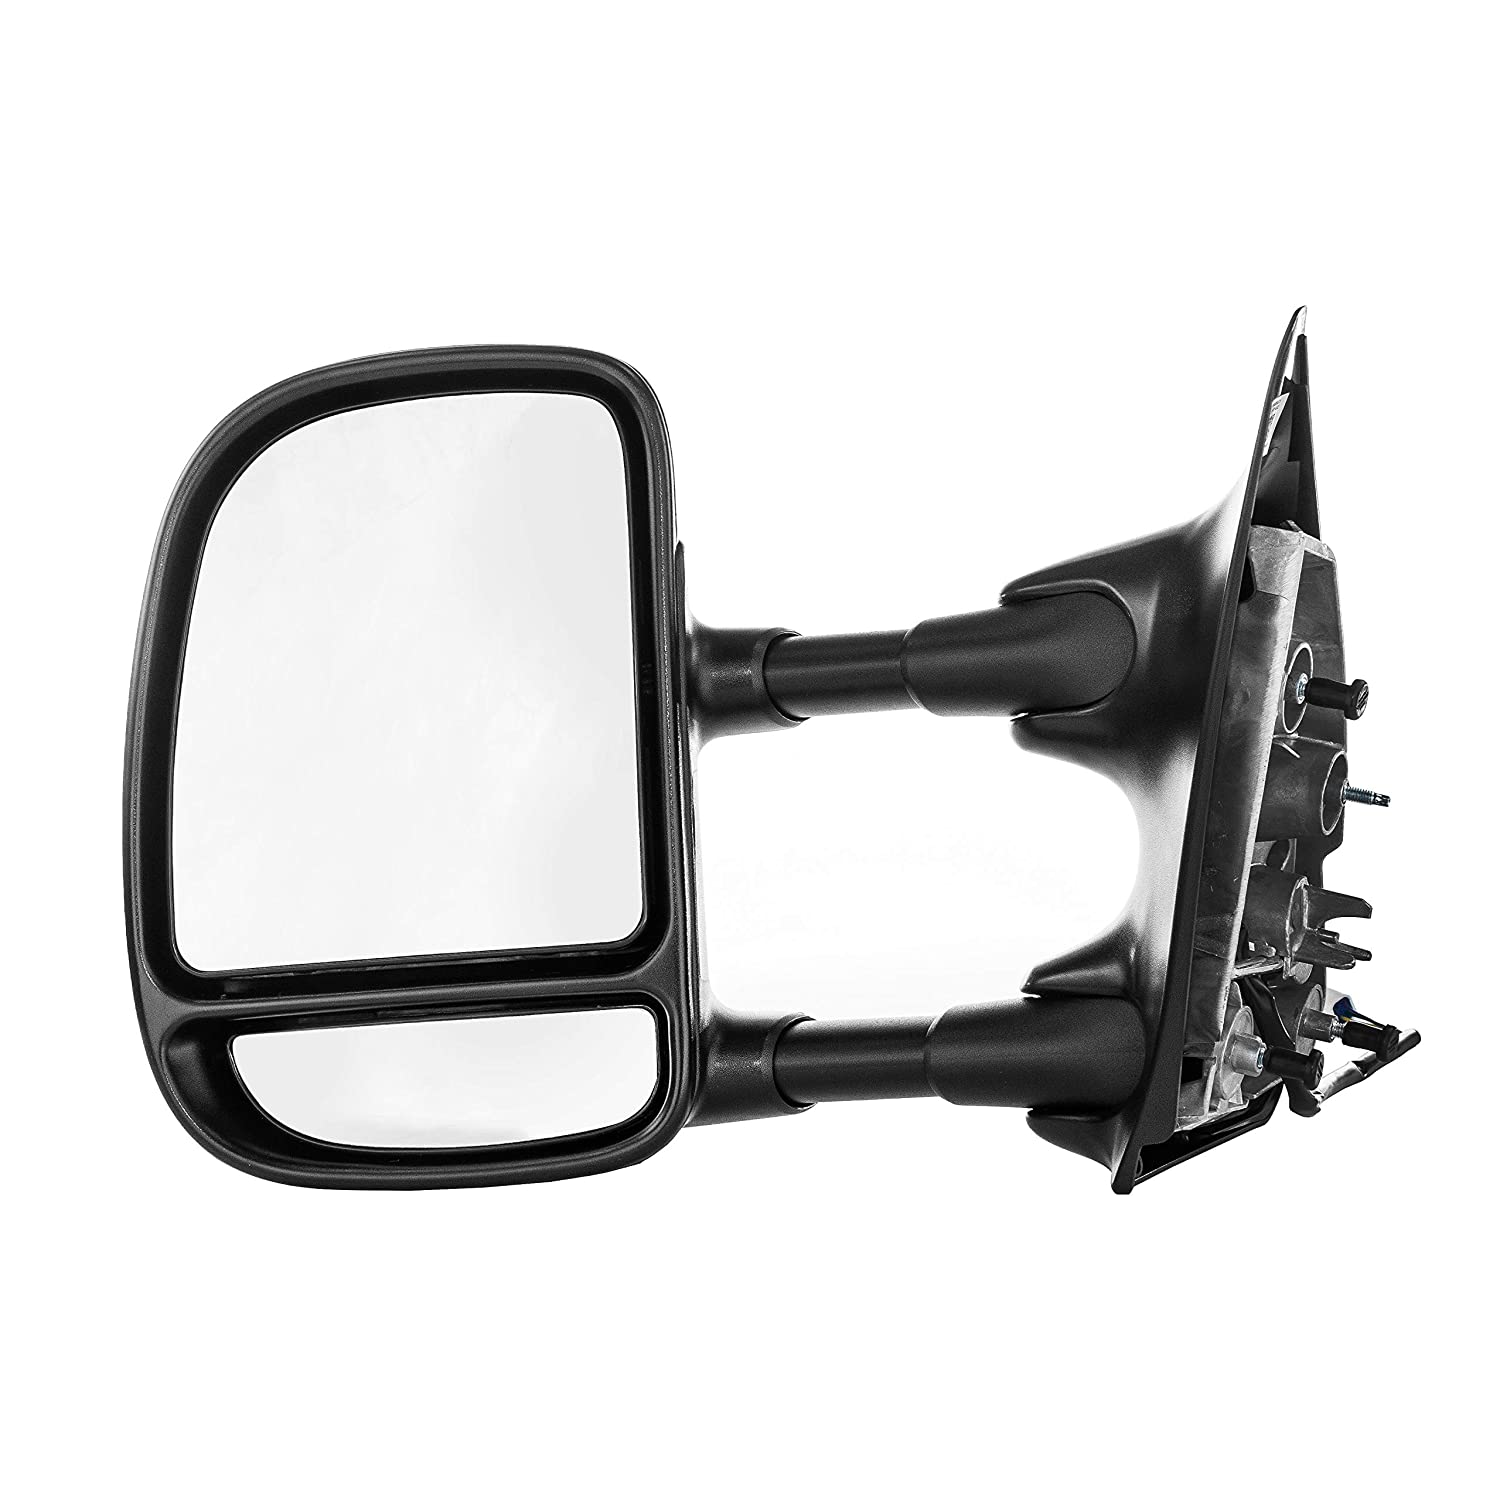 Passenger Side Towing Mirror for Ford Super Duty F-250, F-350 (1999 2000 2001 2002 2003) Textured Non-Heated Power Adjustment Folding Telescopic Right Door Rear View Replacement FO1321196